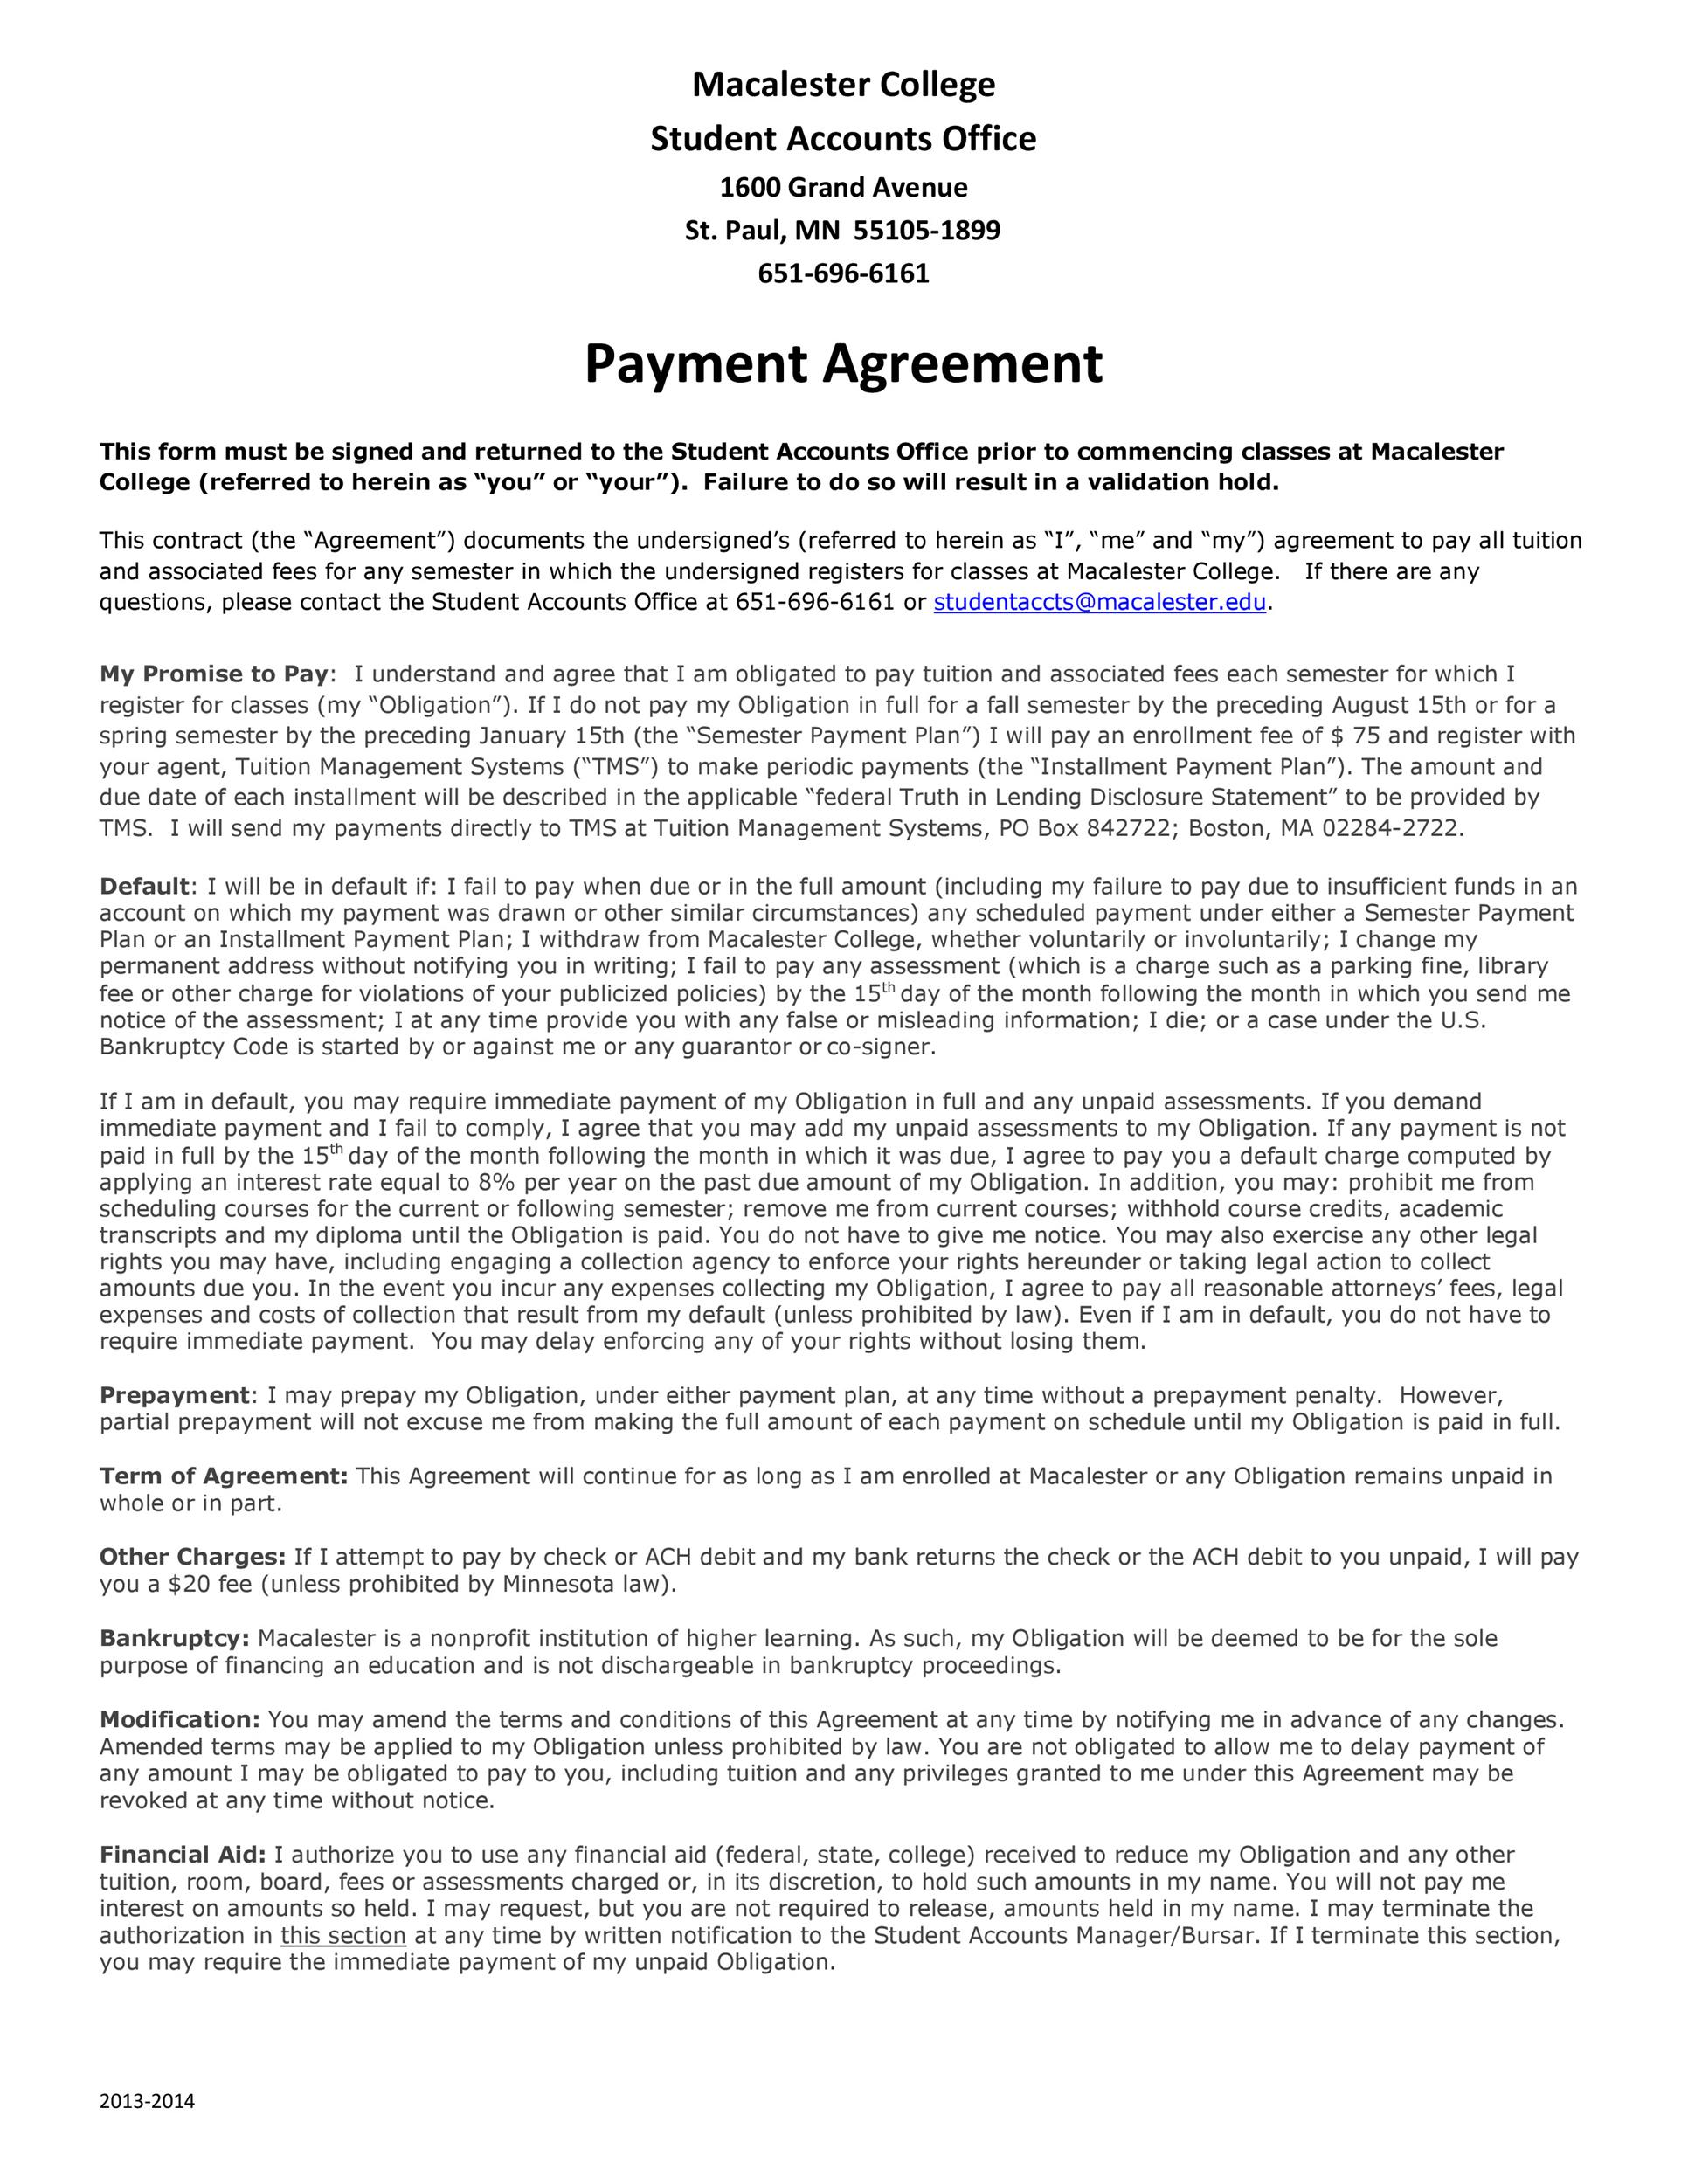 Free payment agreement template 22